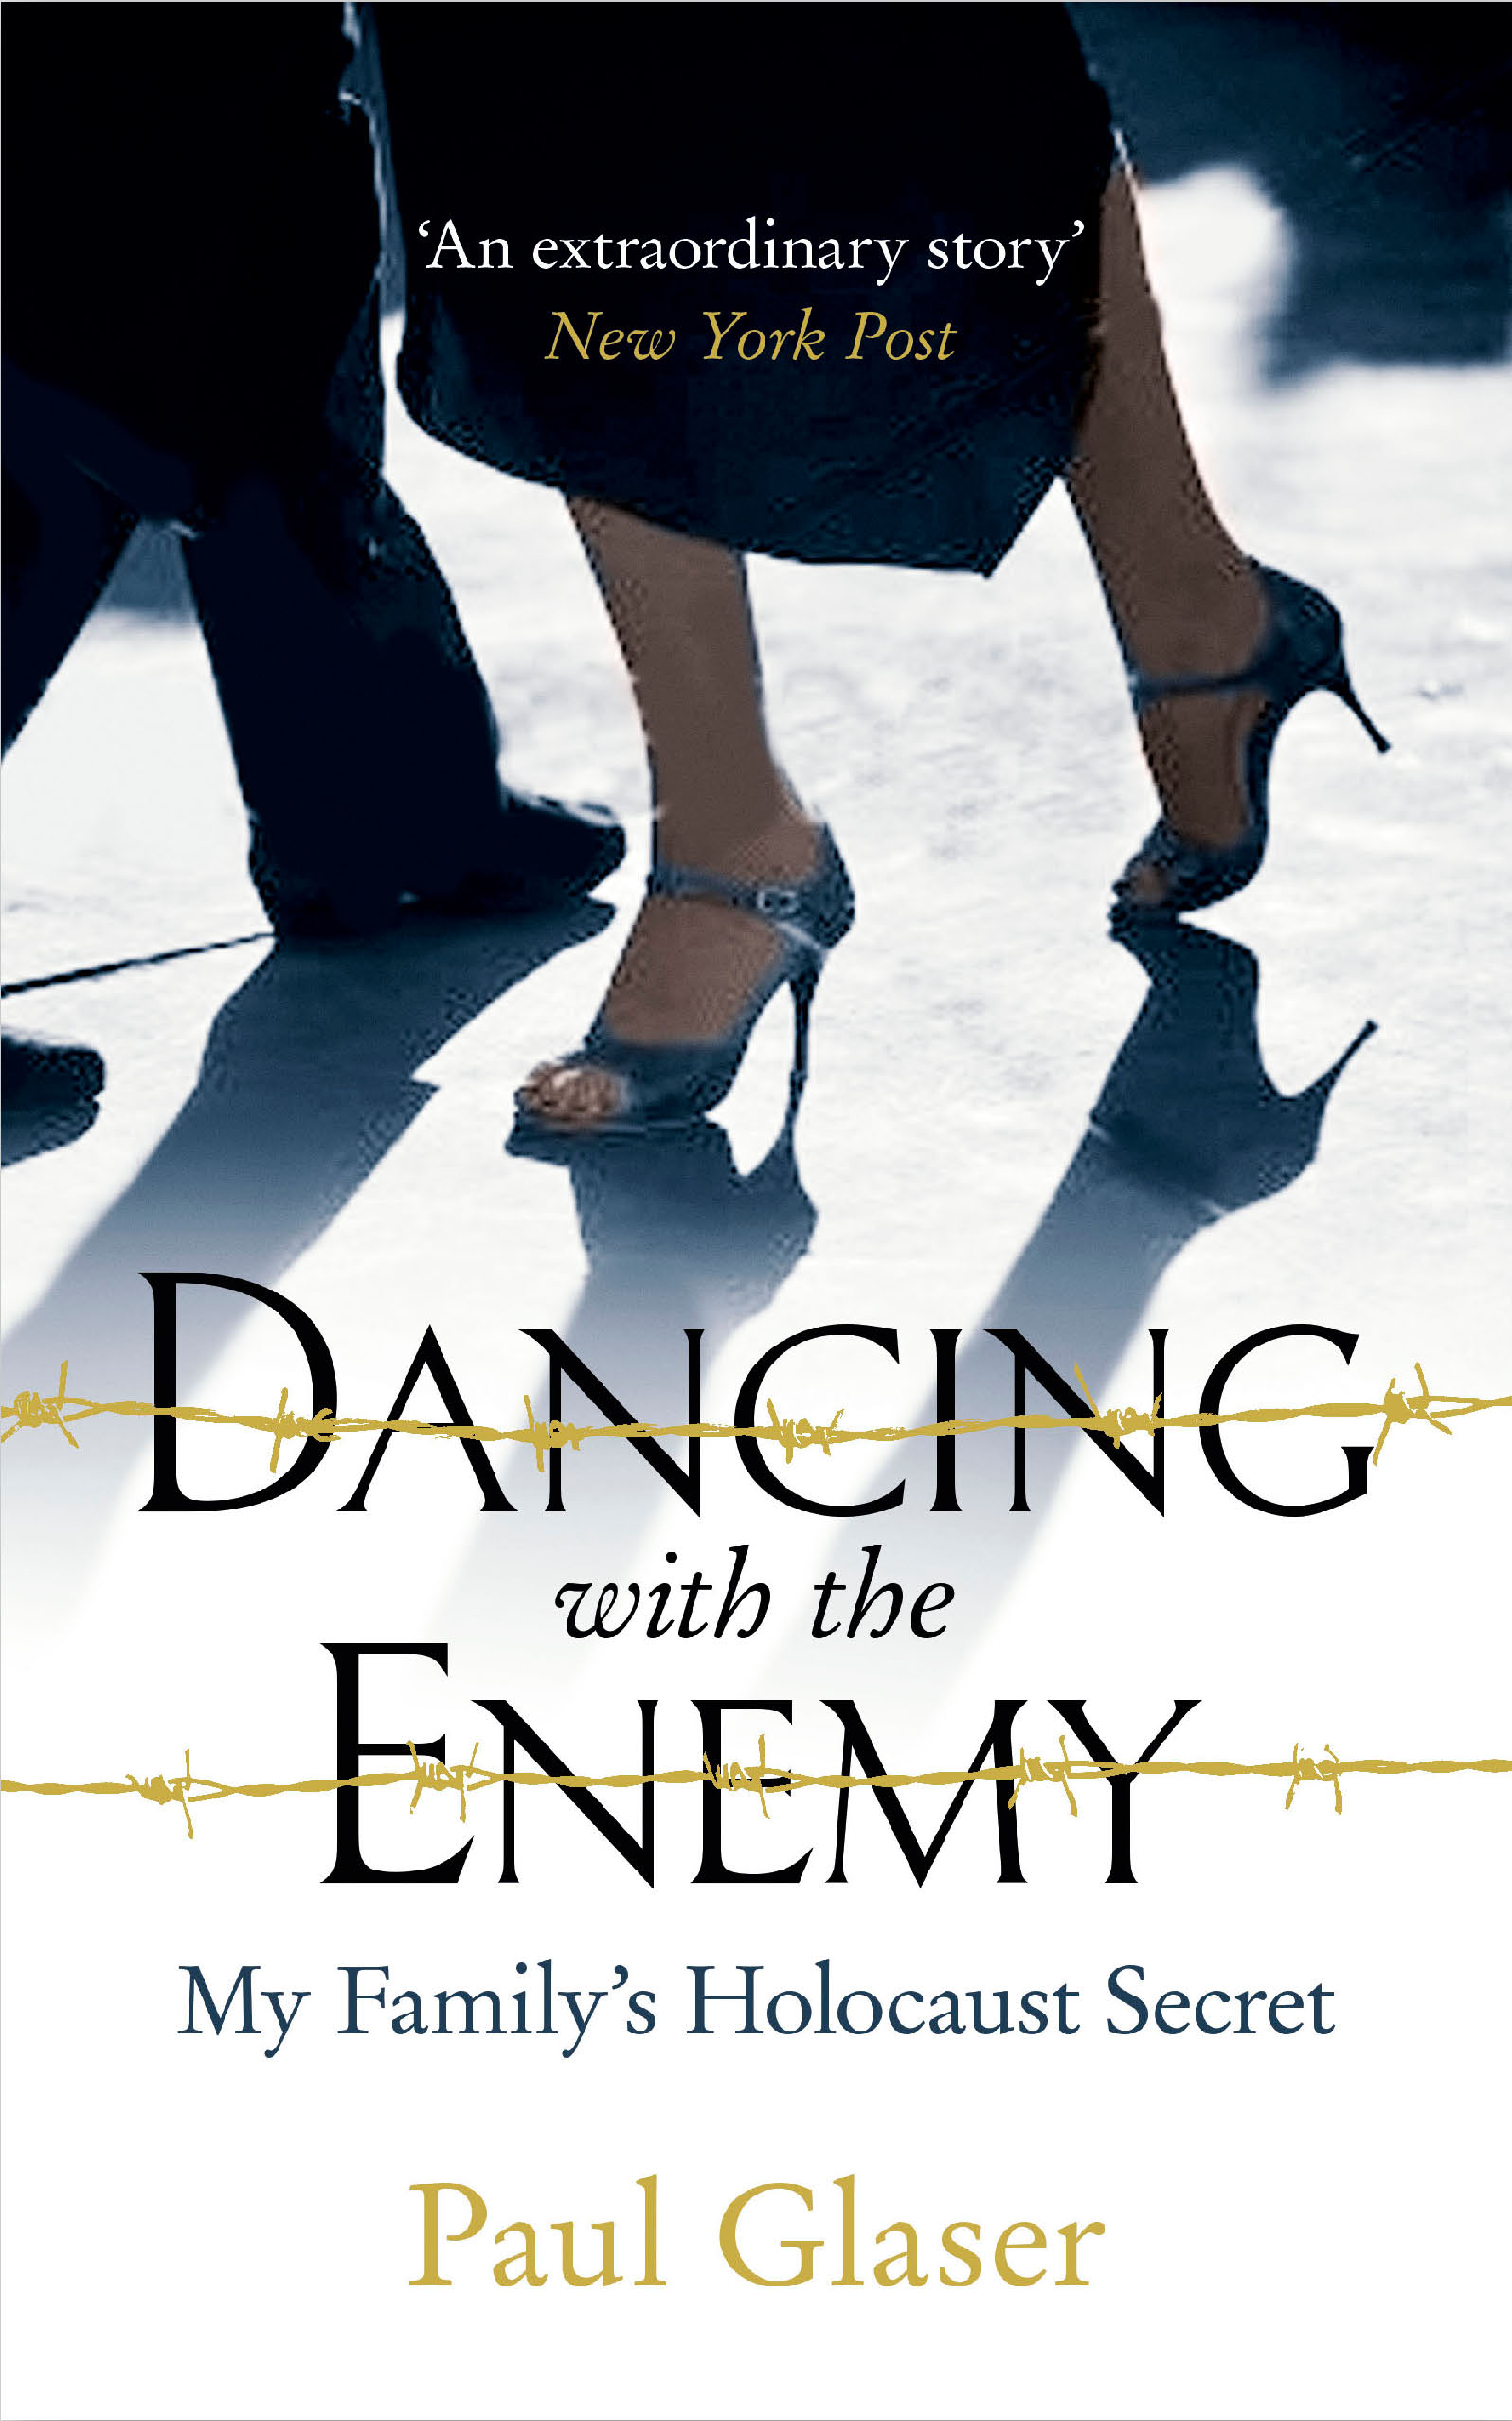 dancing-with-the-enemy-9781780747538.jpg